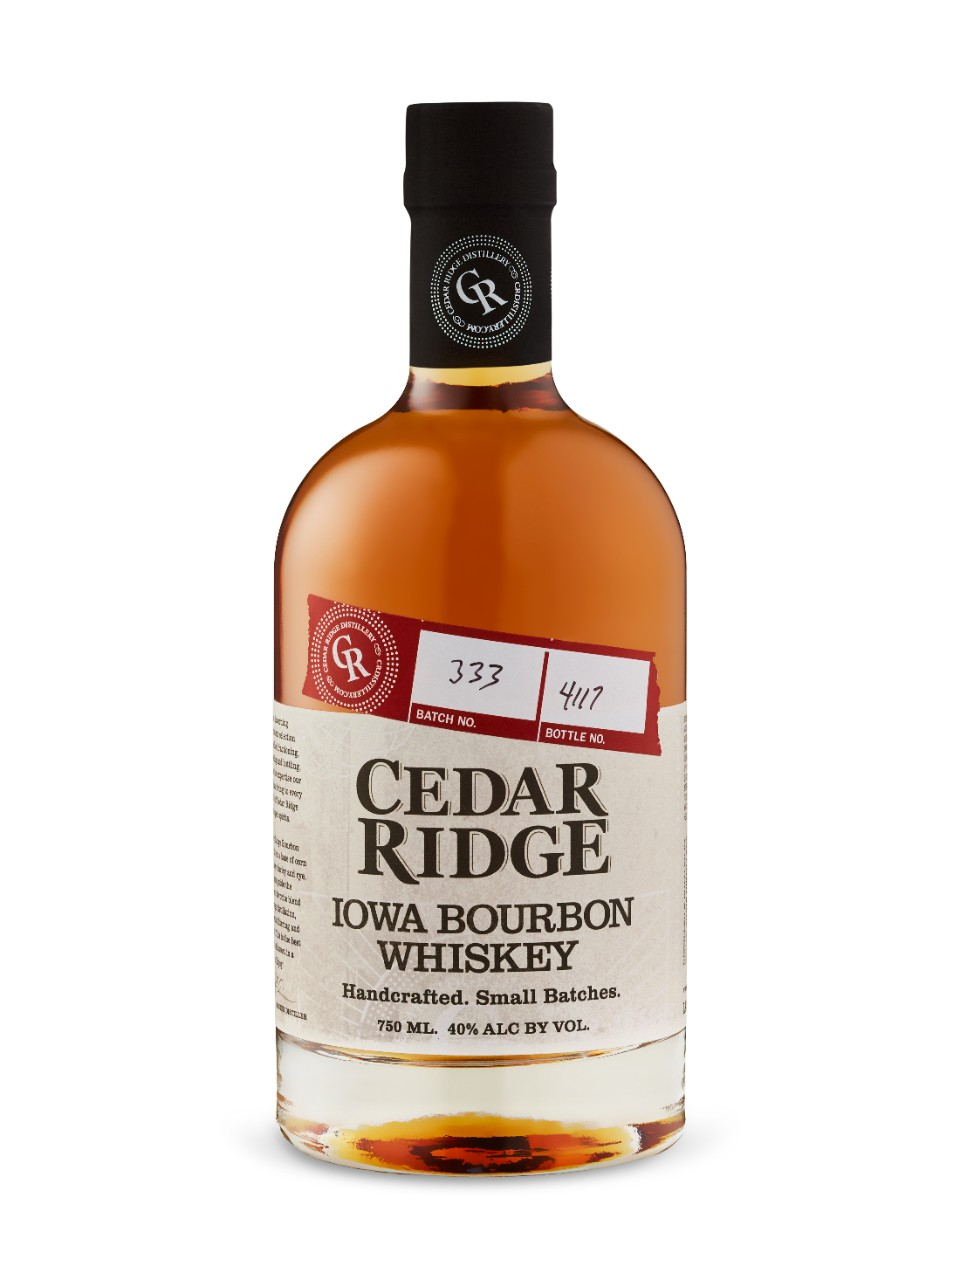 Iowa Bourbon Cedar Ridge